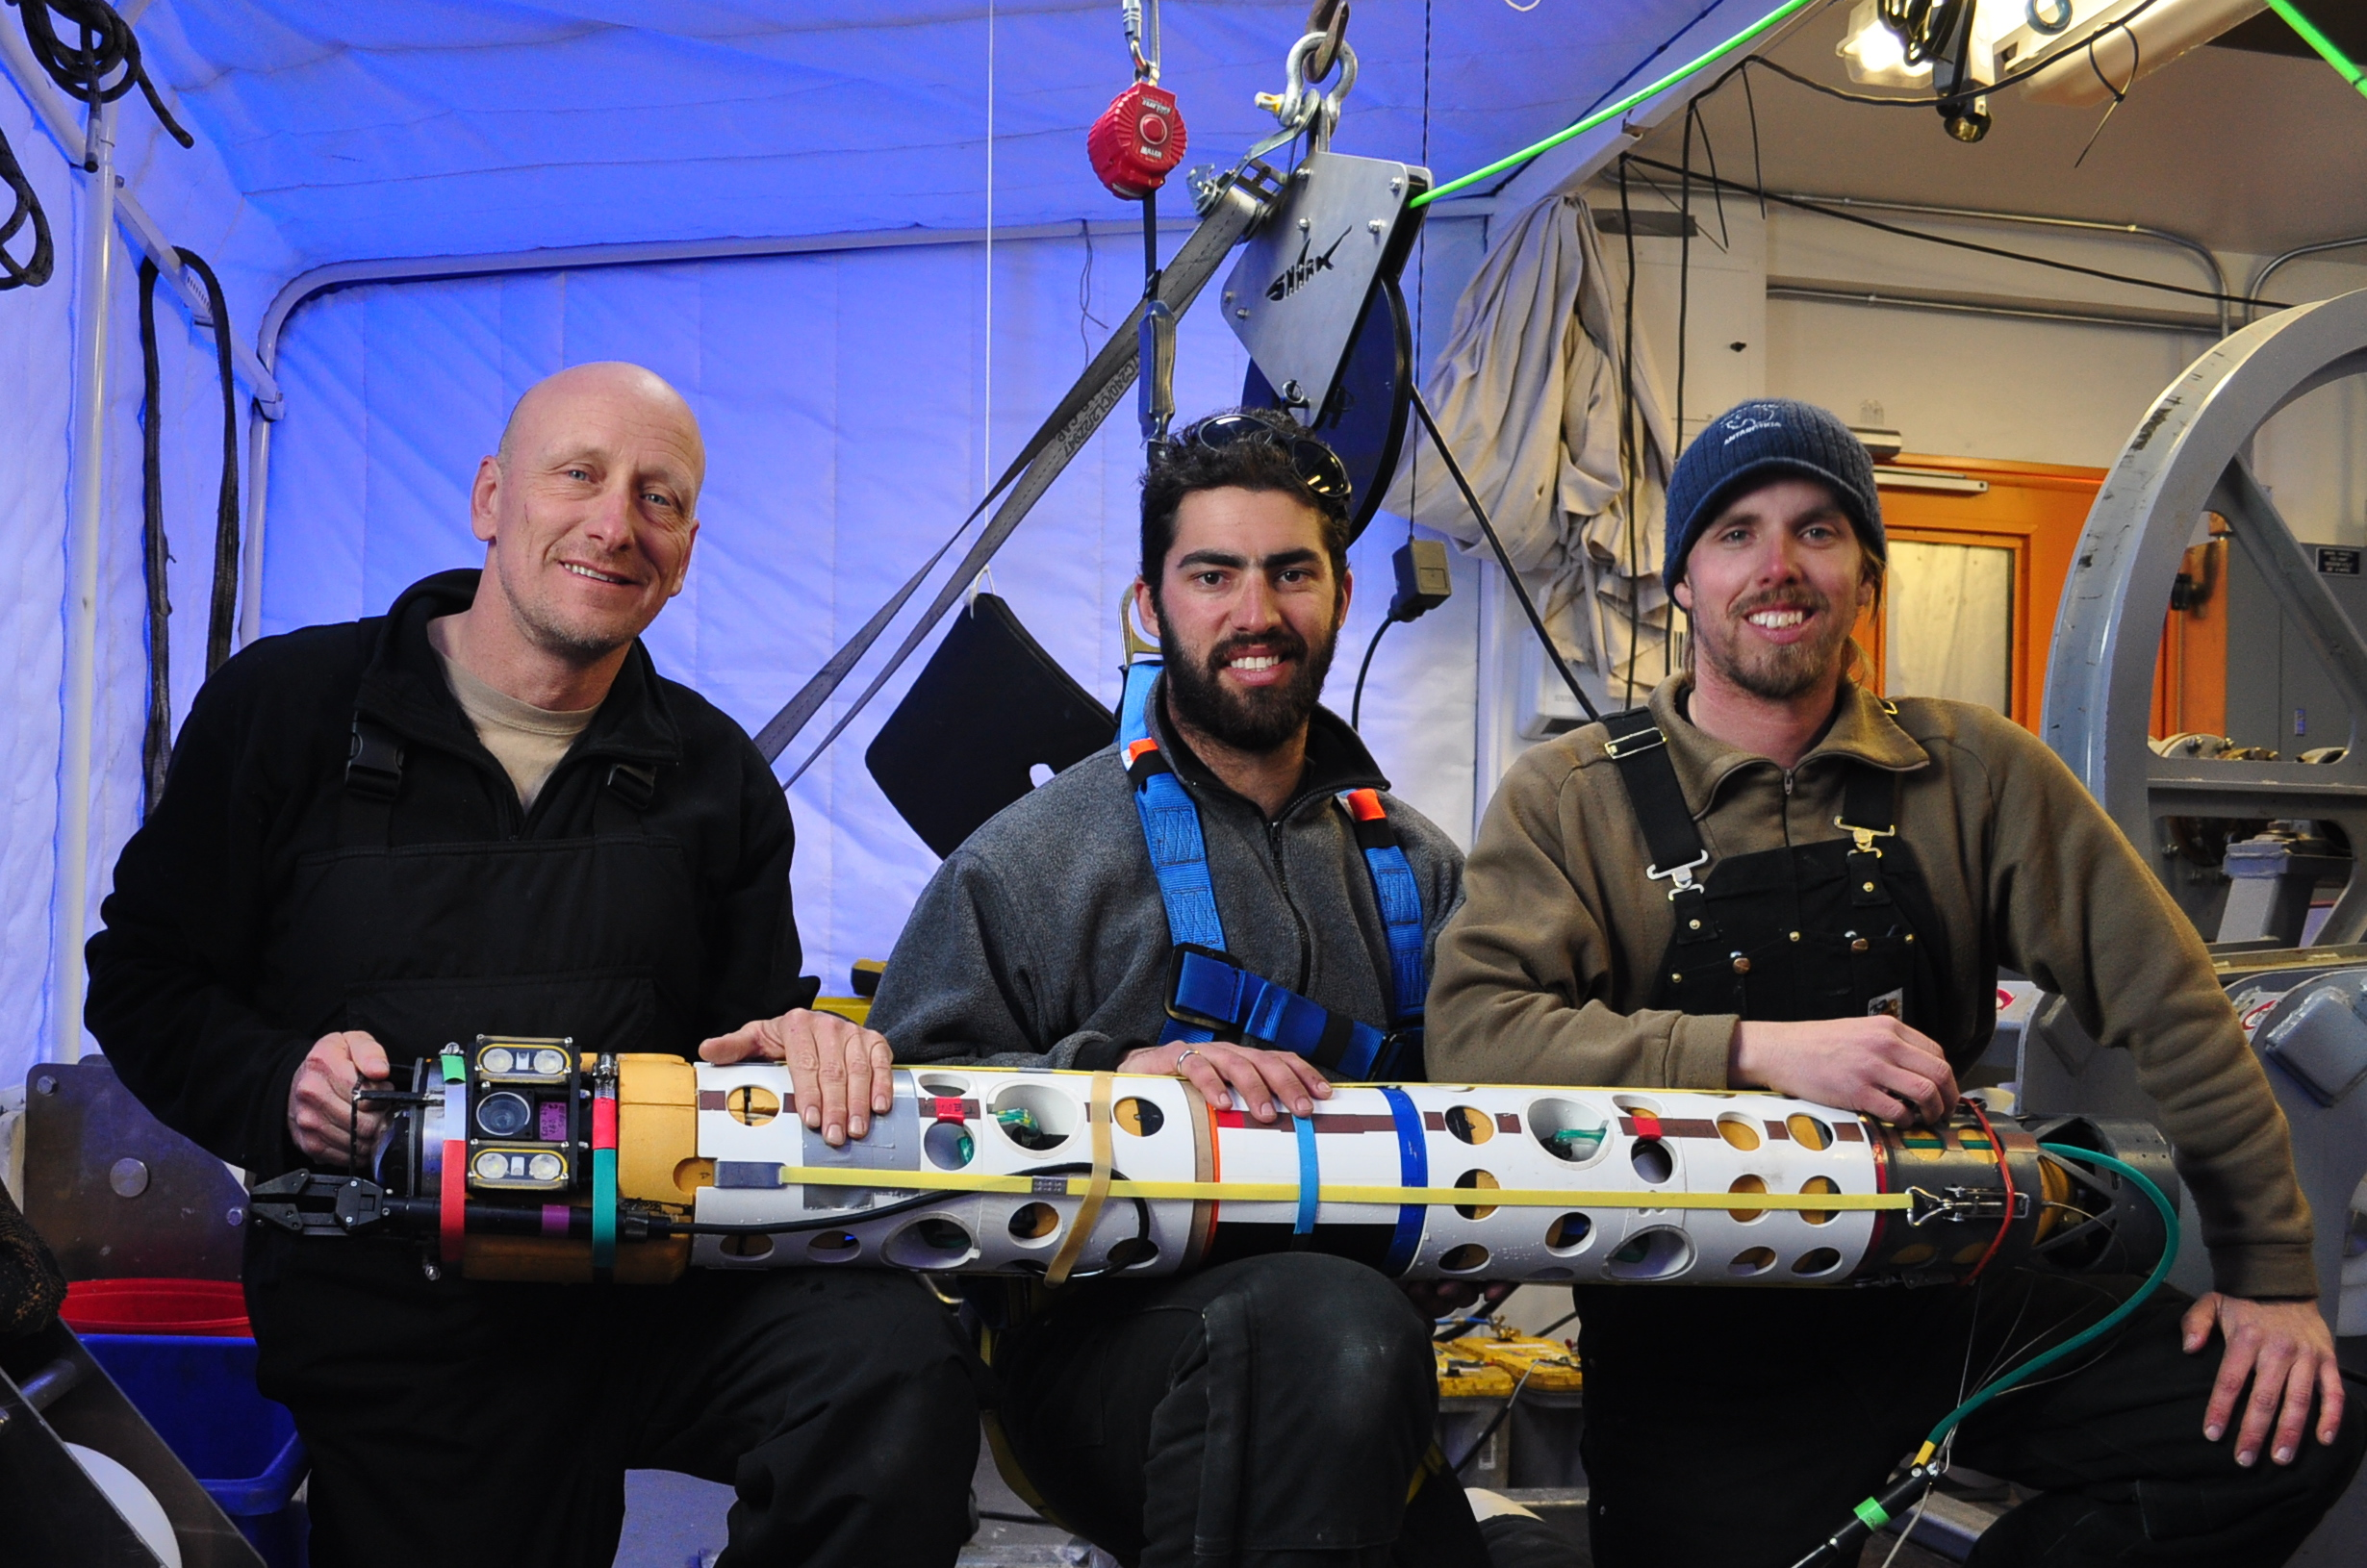 Robot deployment team engineers Bob Zook, Paul Mahecek, and Dustin Carroll, seen here holding the underwater robot that captured images of the ice anemones. Image credit: Dr. Frank R. Rack, ANDRILL Science Management Office, University of Nebraska-Lincoln.